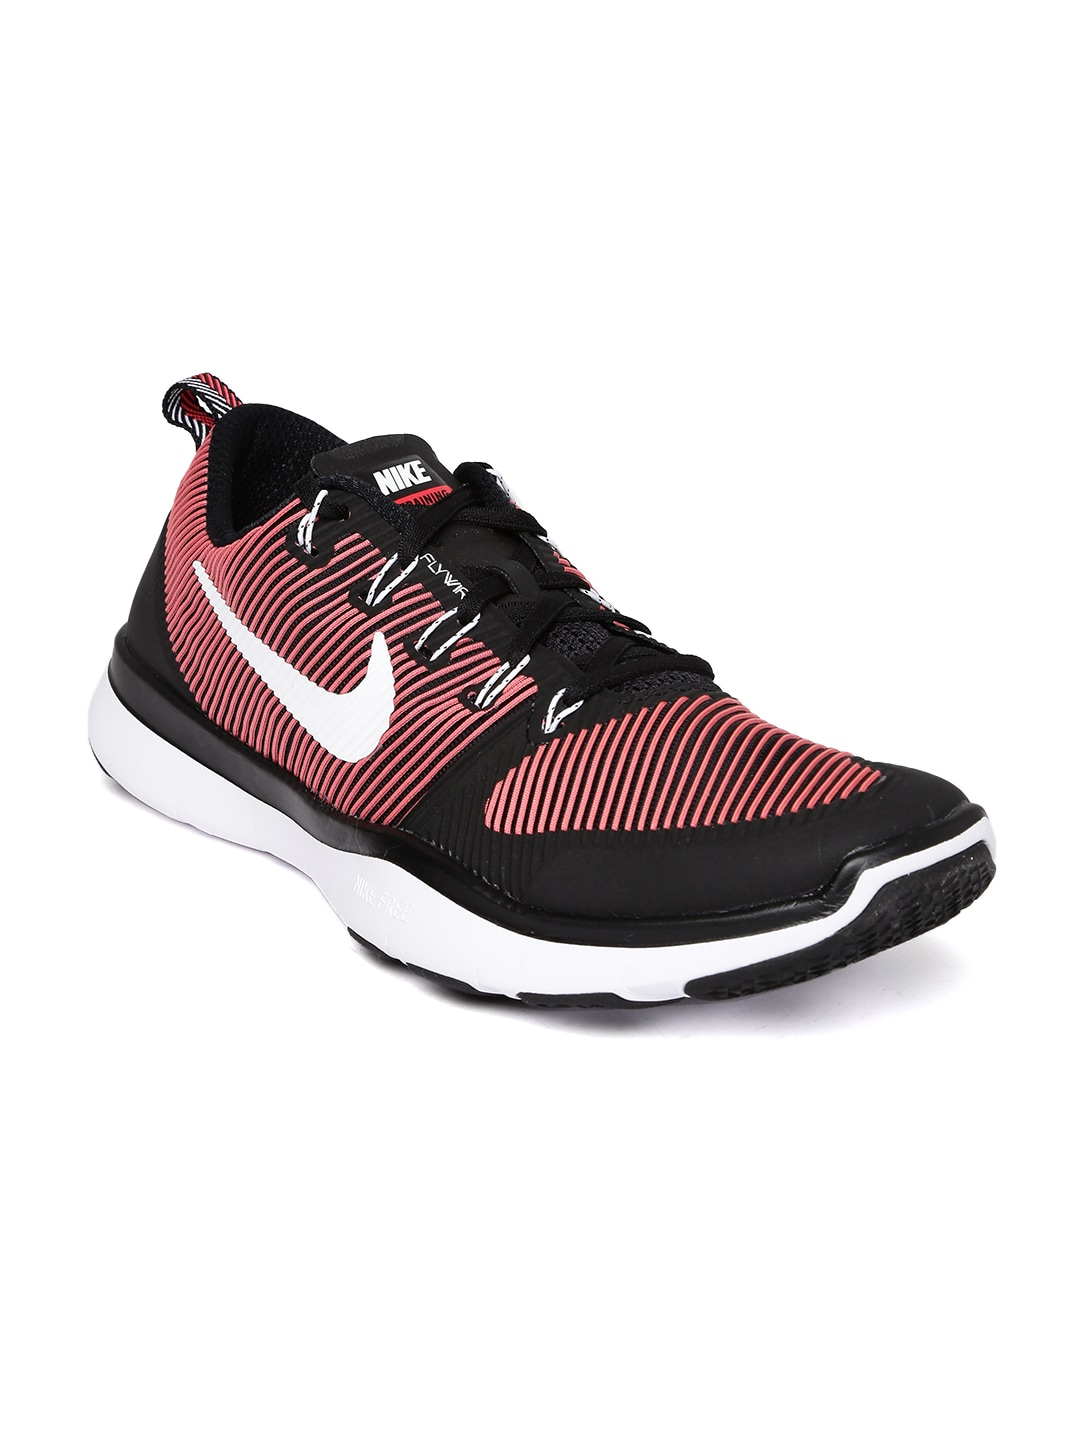 8105e775bd363e Nike Sport Shoe - Buy Nike Sport Shoes At Best Price Online